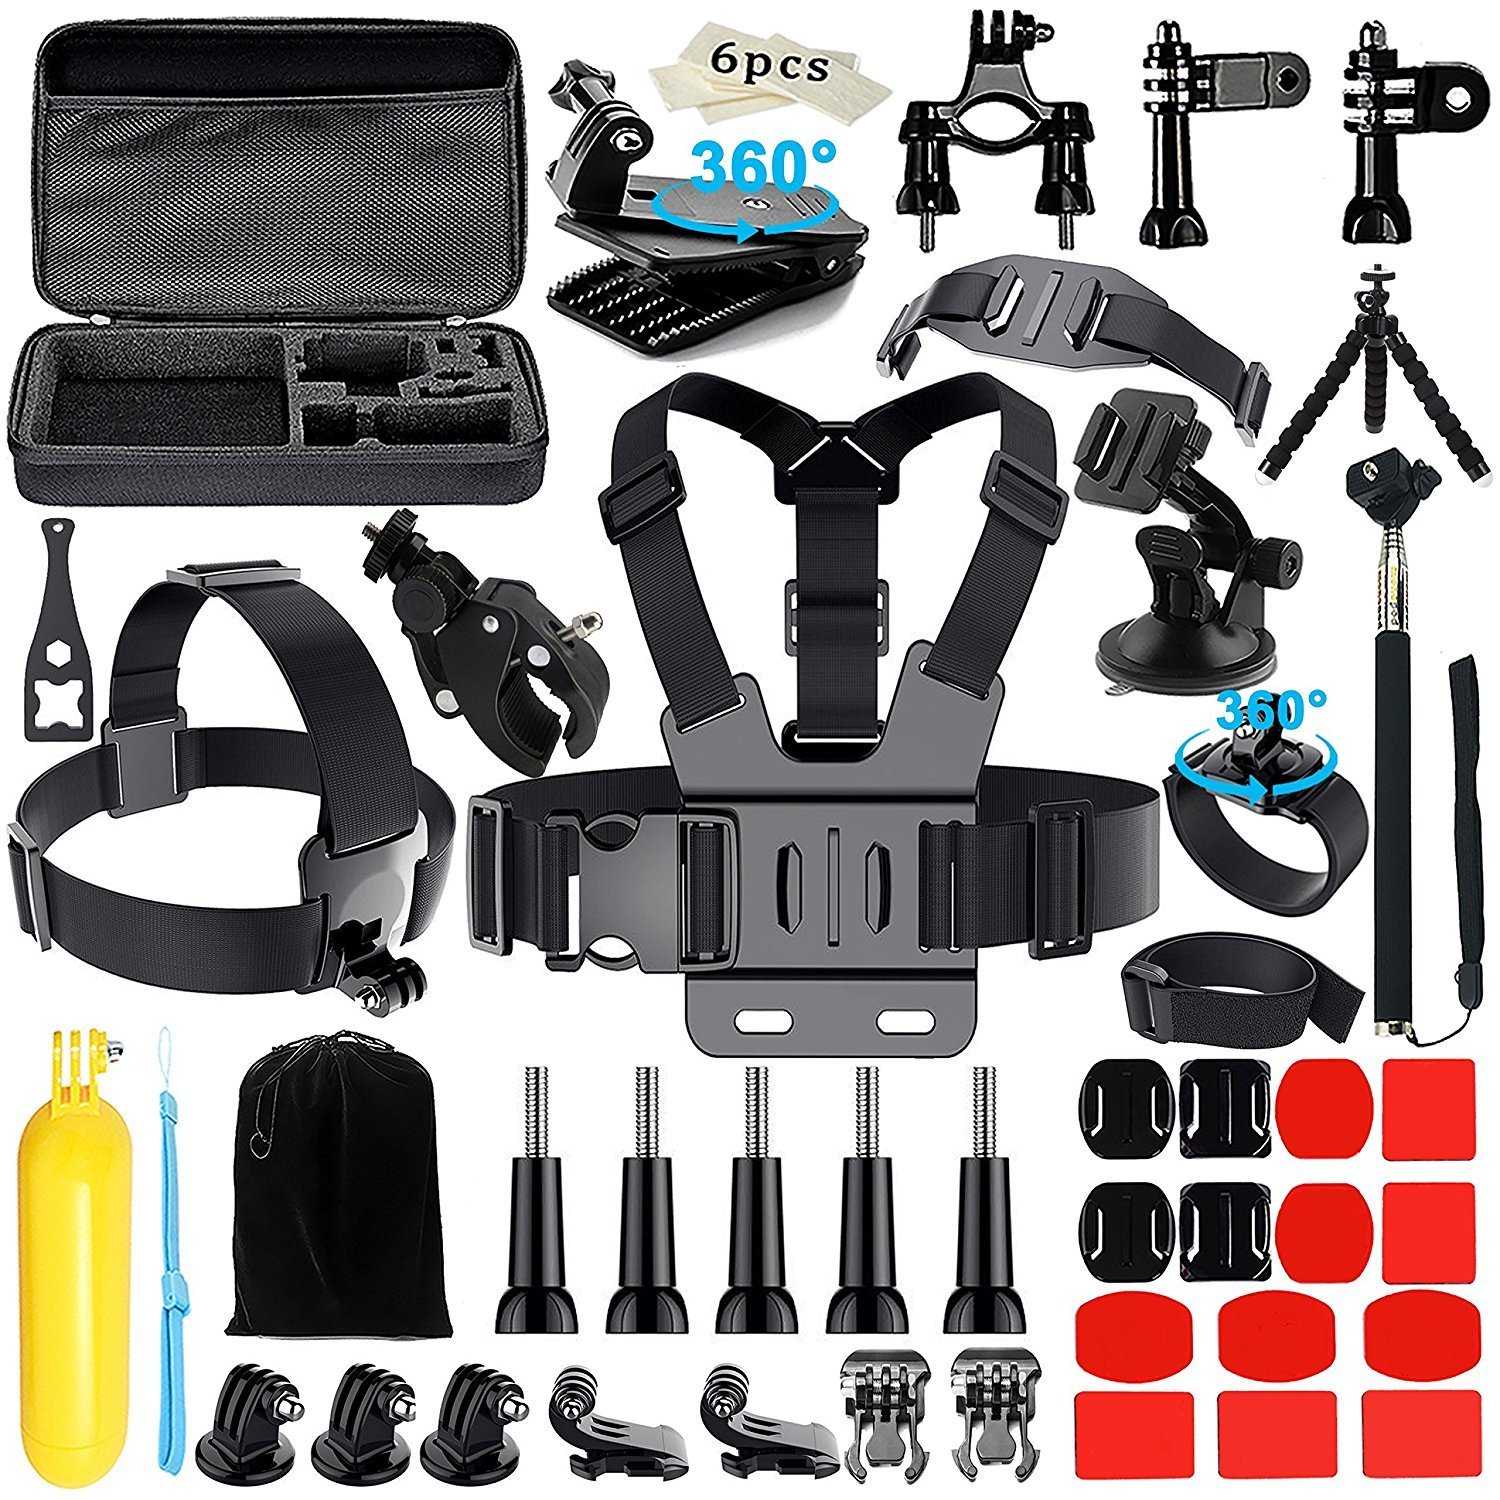 Iextreme Camera Accessories for GoPro Hero 2018 Session/6 5 Hero 4 3+ SJ4000/5000/6000/AKASO/APEMAN/DBPOWER/And Sony Sports DV and More